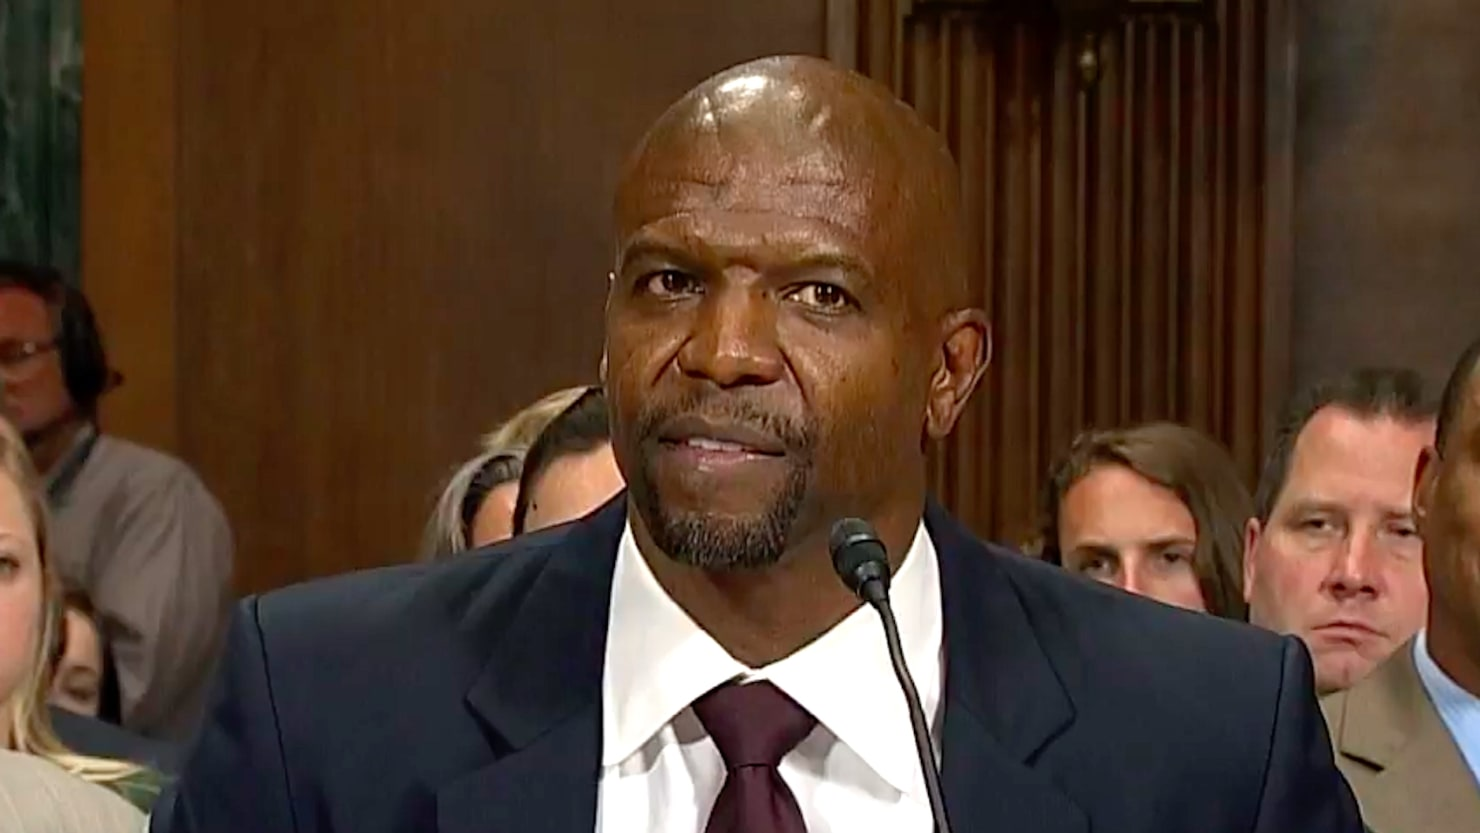 Terry Crews' powerful testimony on sexual assault will make you rethink everything